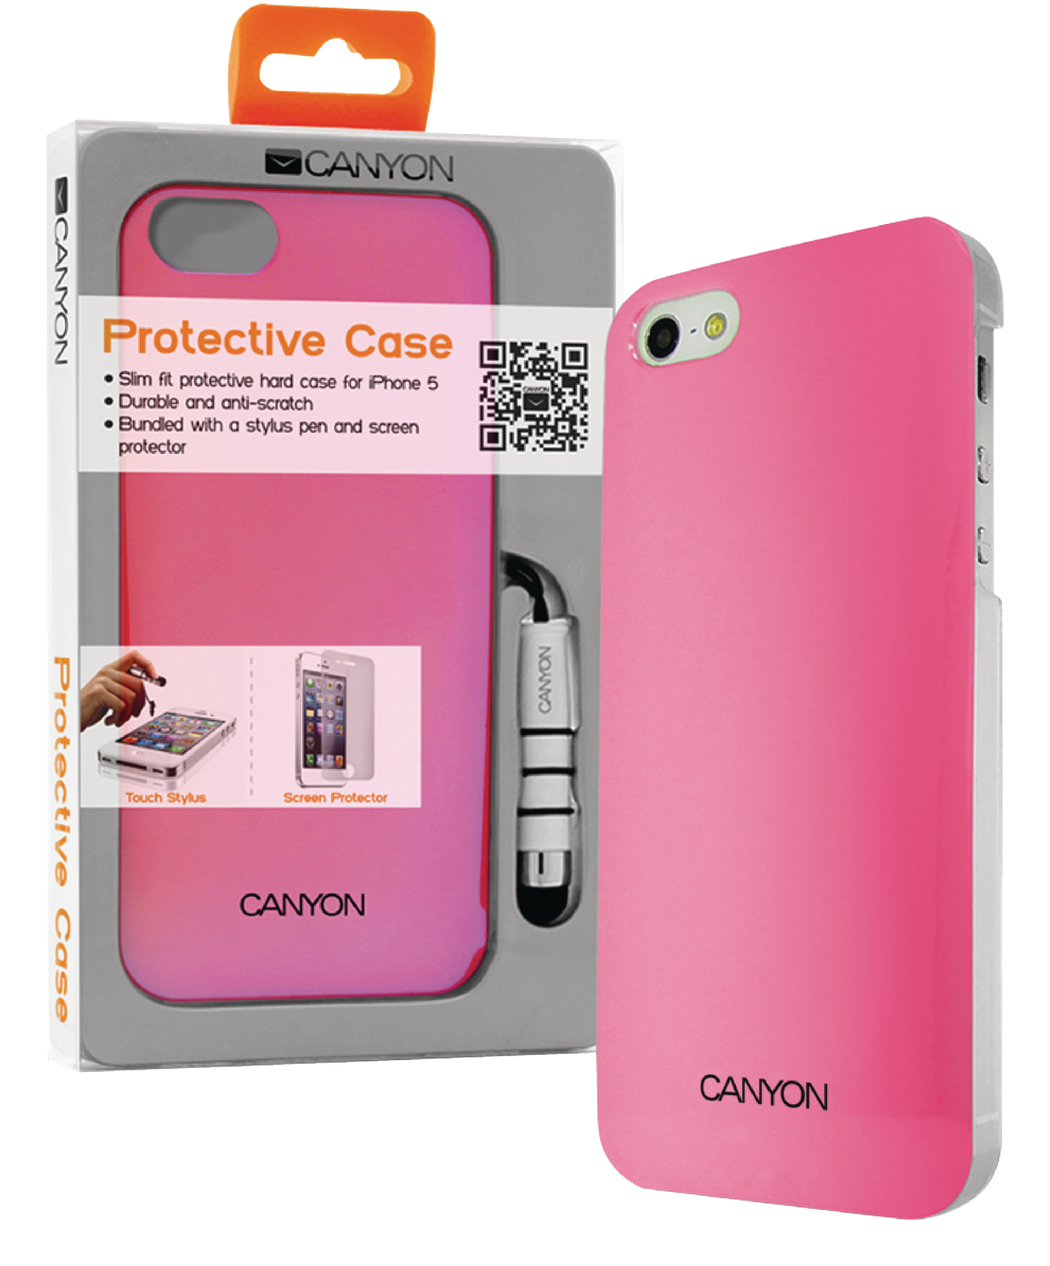 Canyon Cna-i5c03p Iphone 5 Hard Cover Case met Stylus en Screen Protector Roze